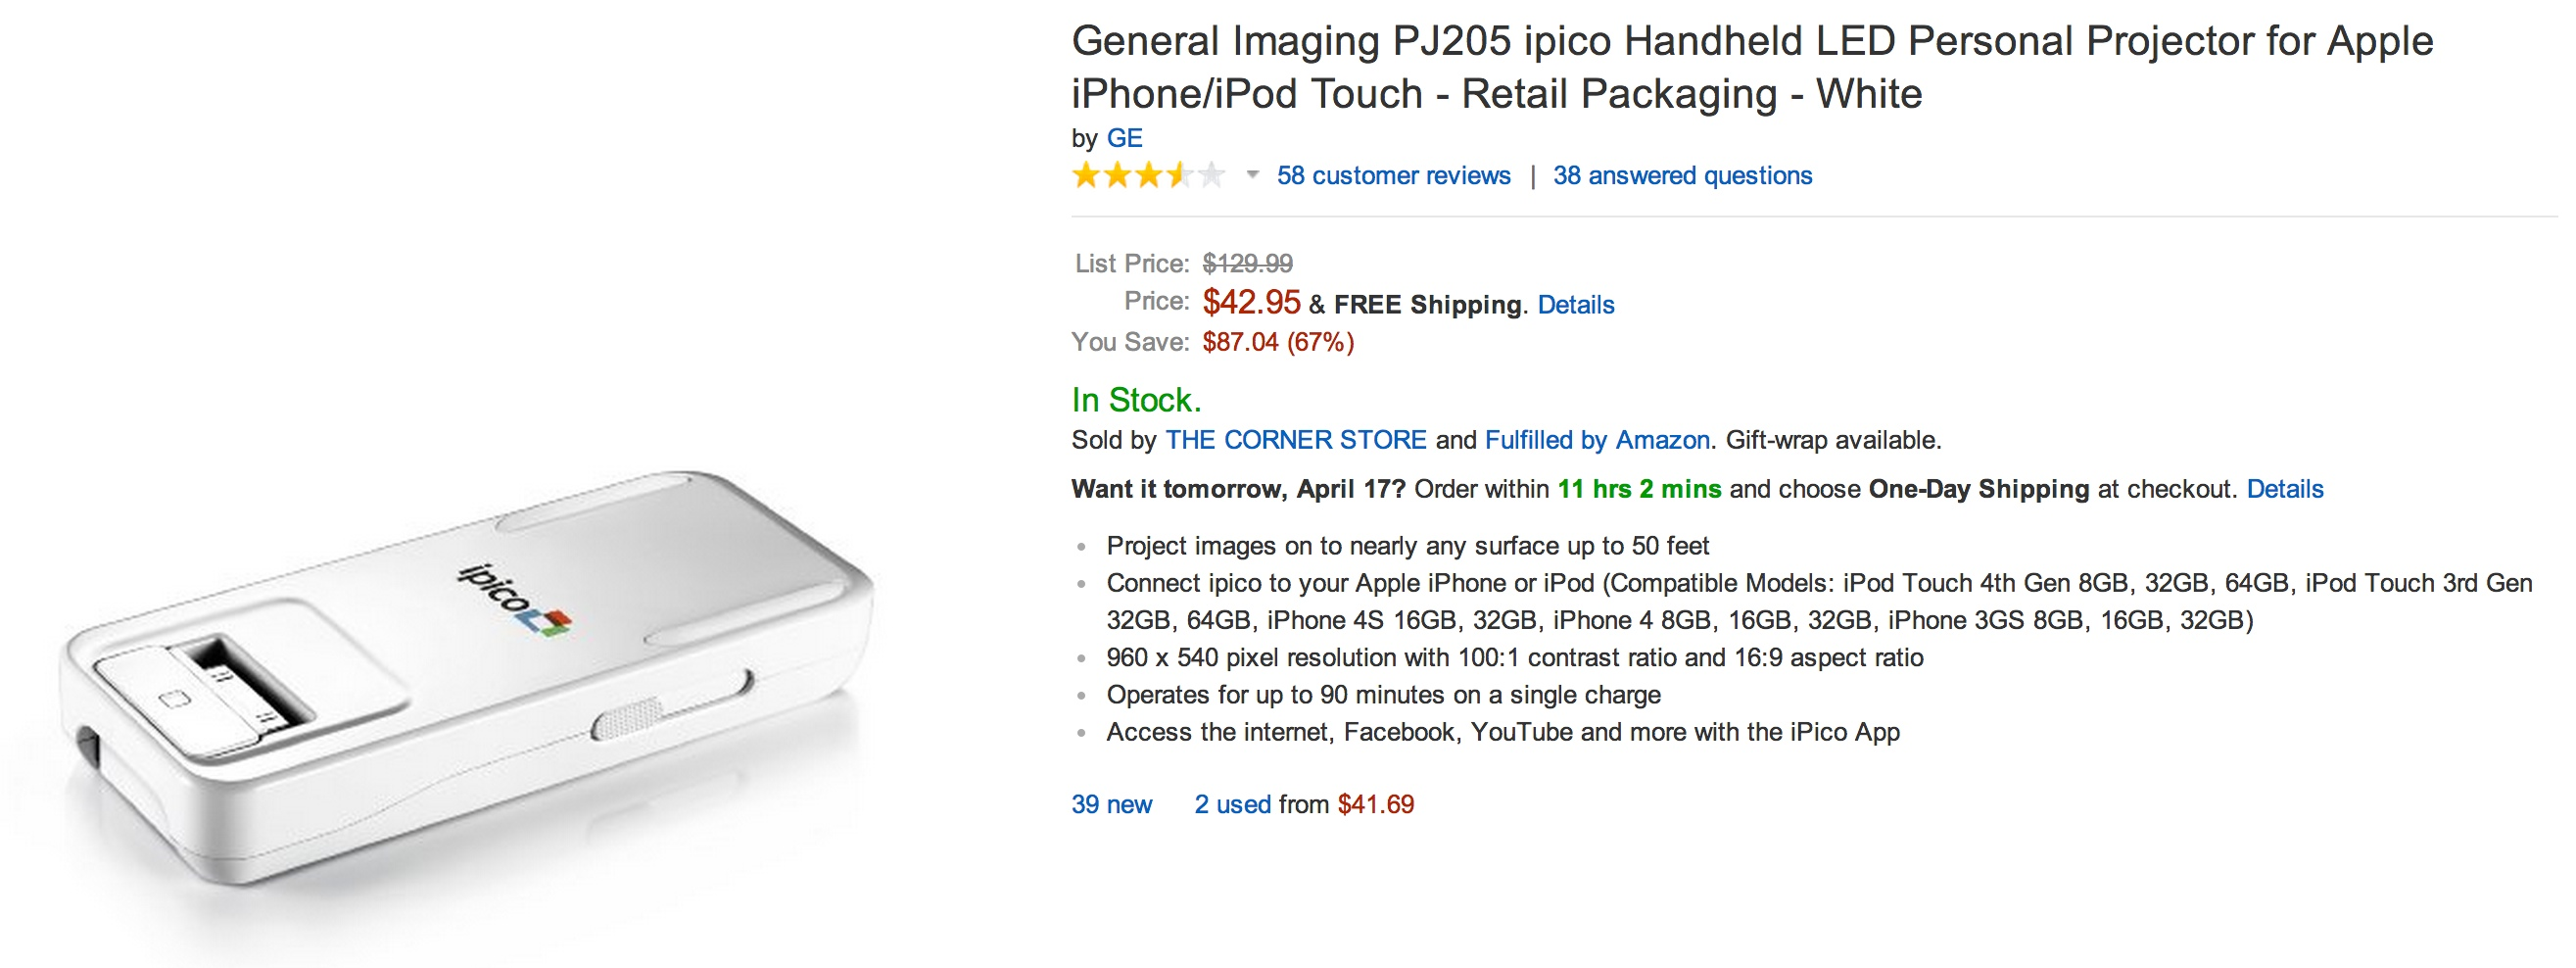 General Imaging ipico Handheld LED Personal Projector for Apple iPhone/iPod Touch $43 shipped (Reg. $130) - 9to5Toys